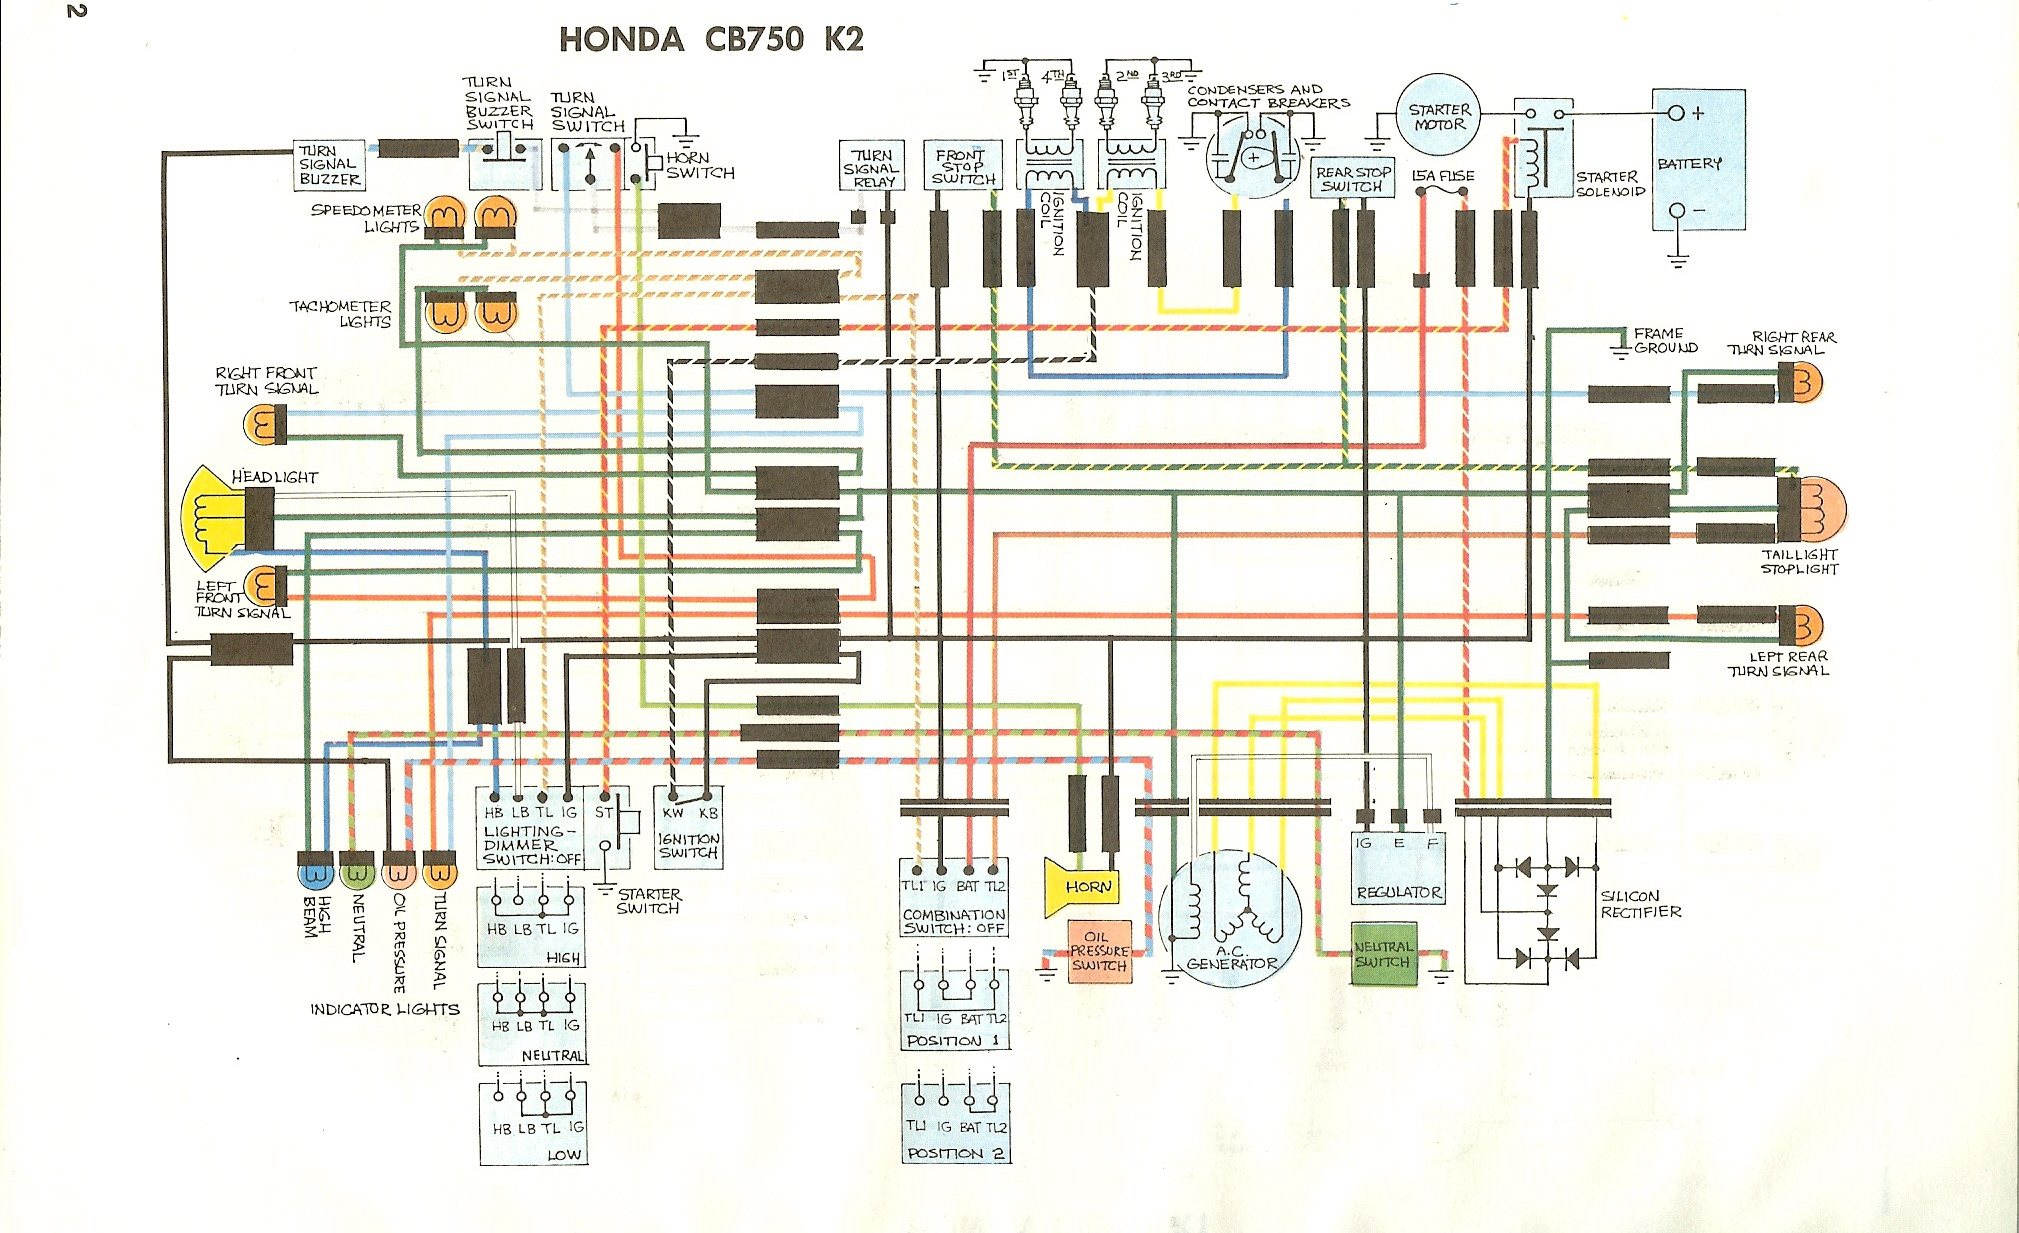 cafe cb550 wiring diagram 1978 honda cb550 wiring diagram